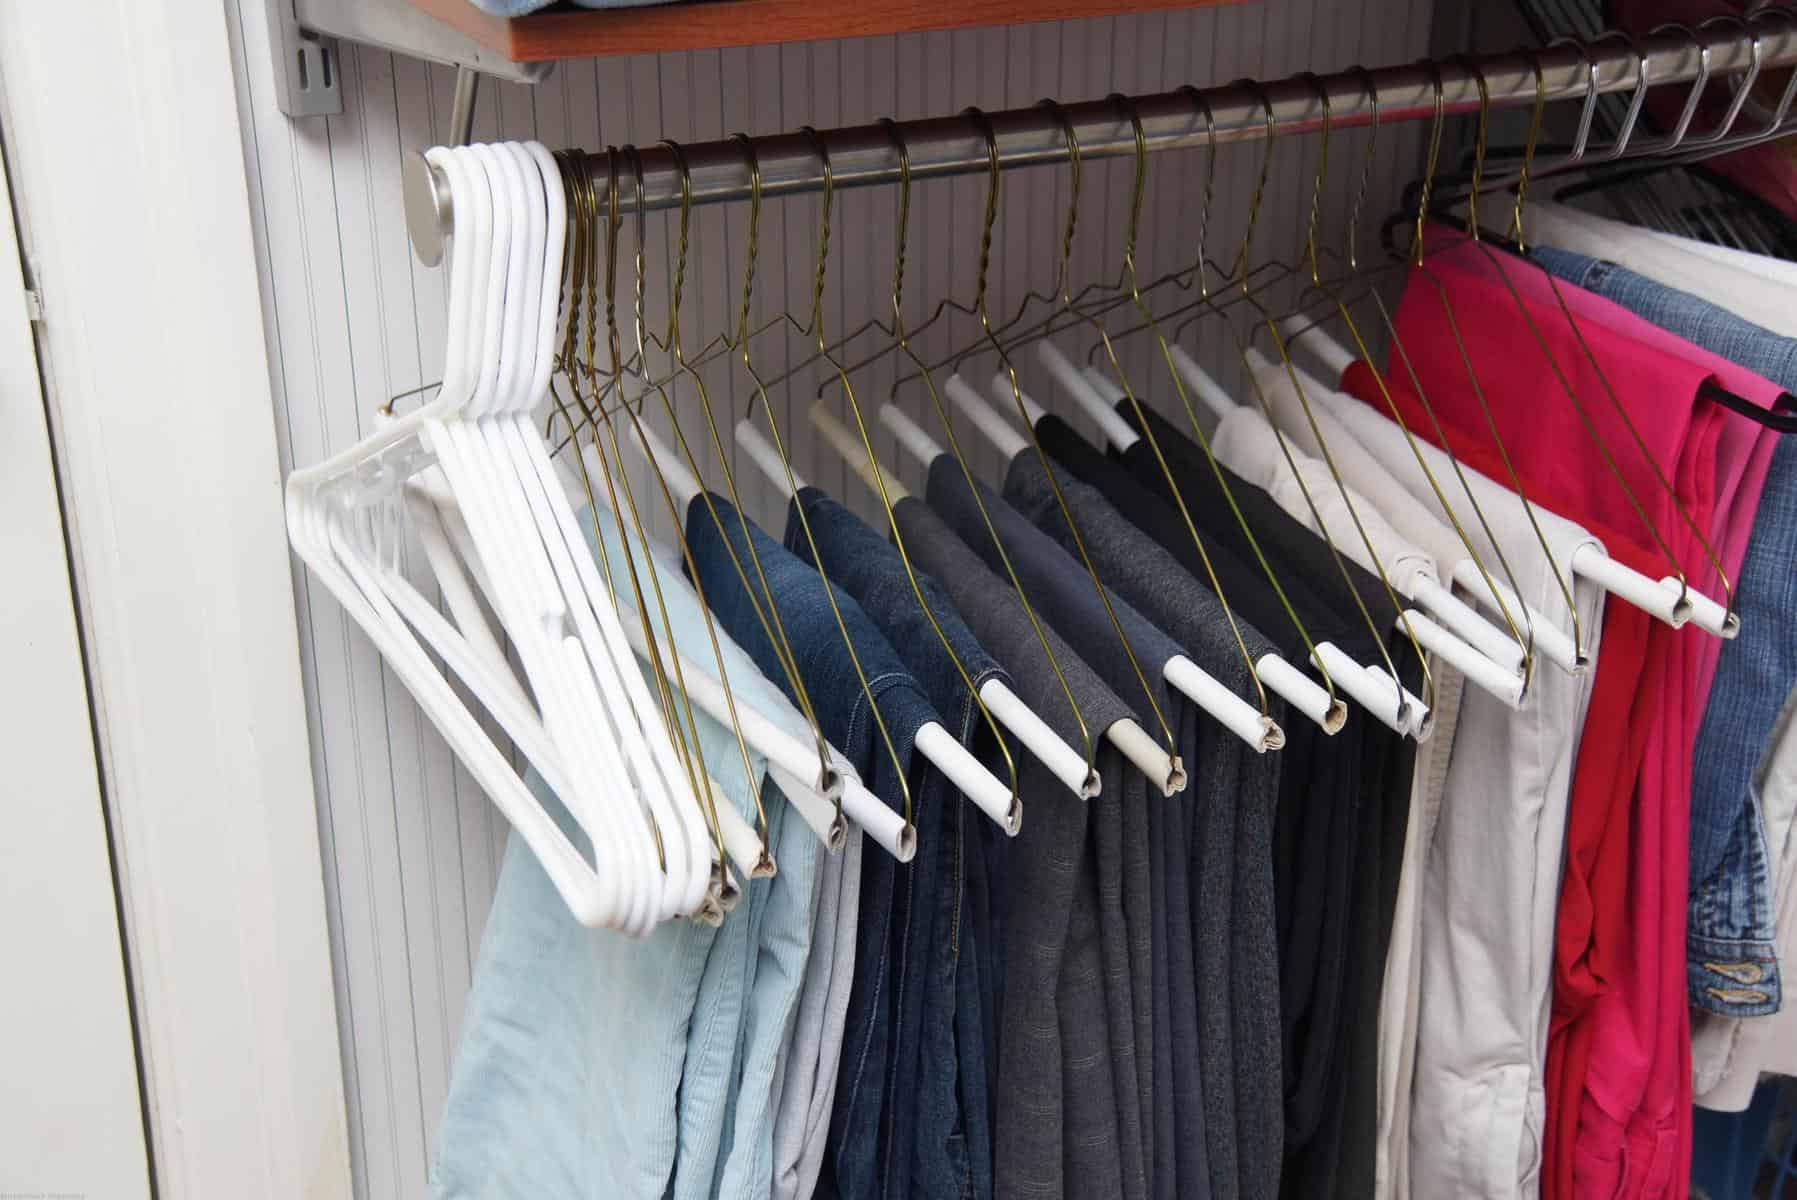 Superior Pants Hangers When Organizing In Closet